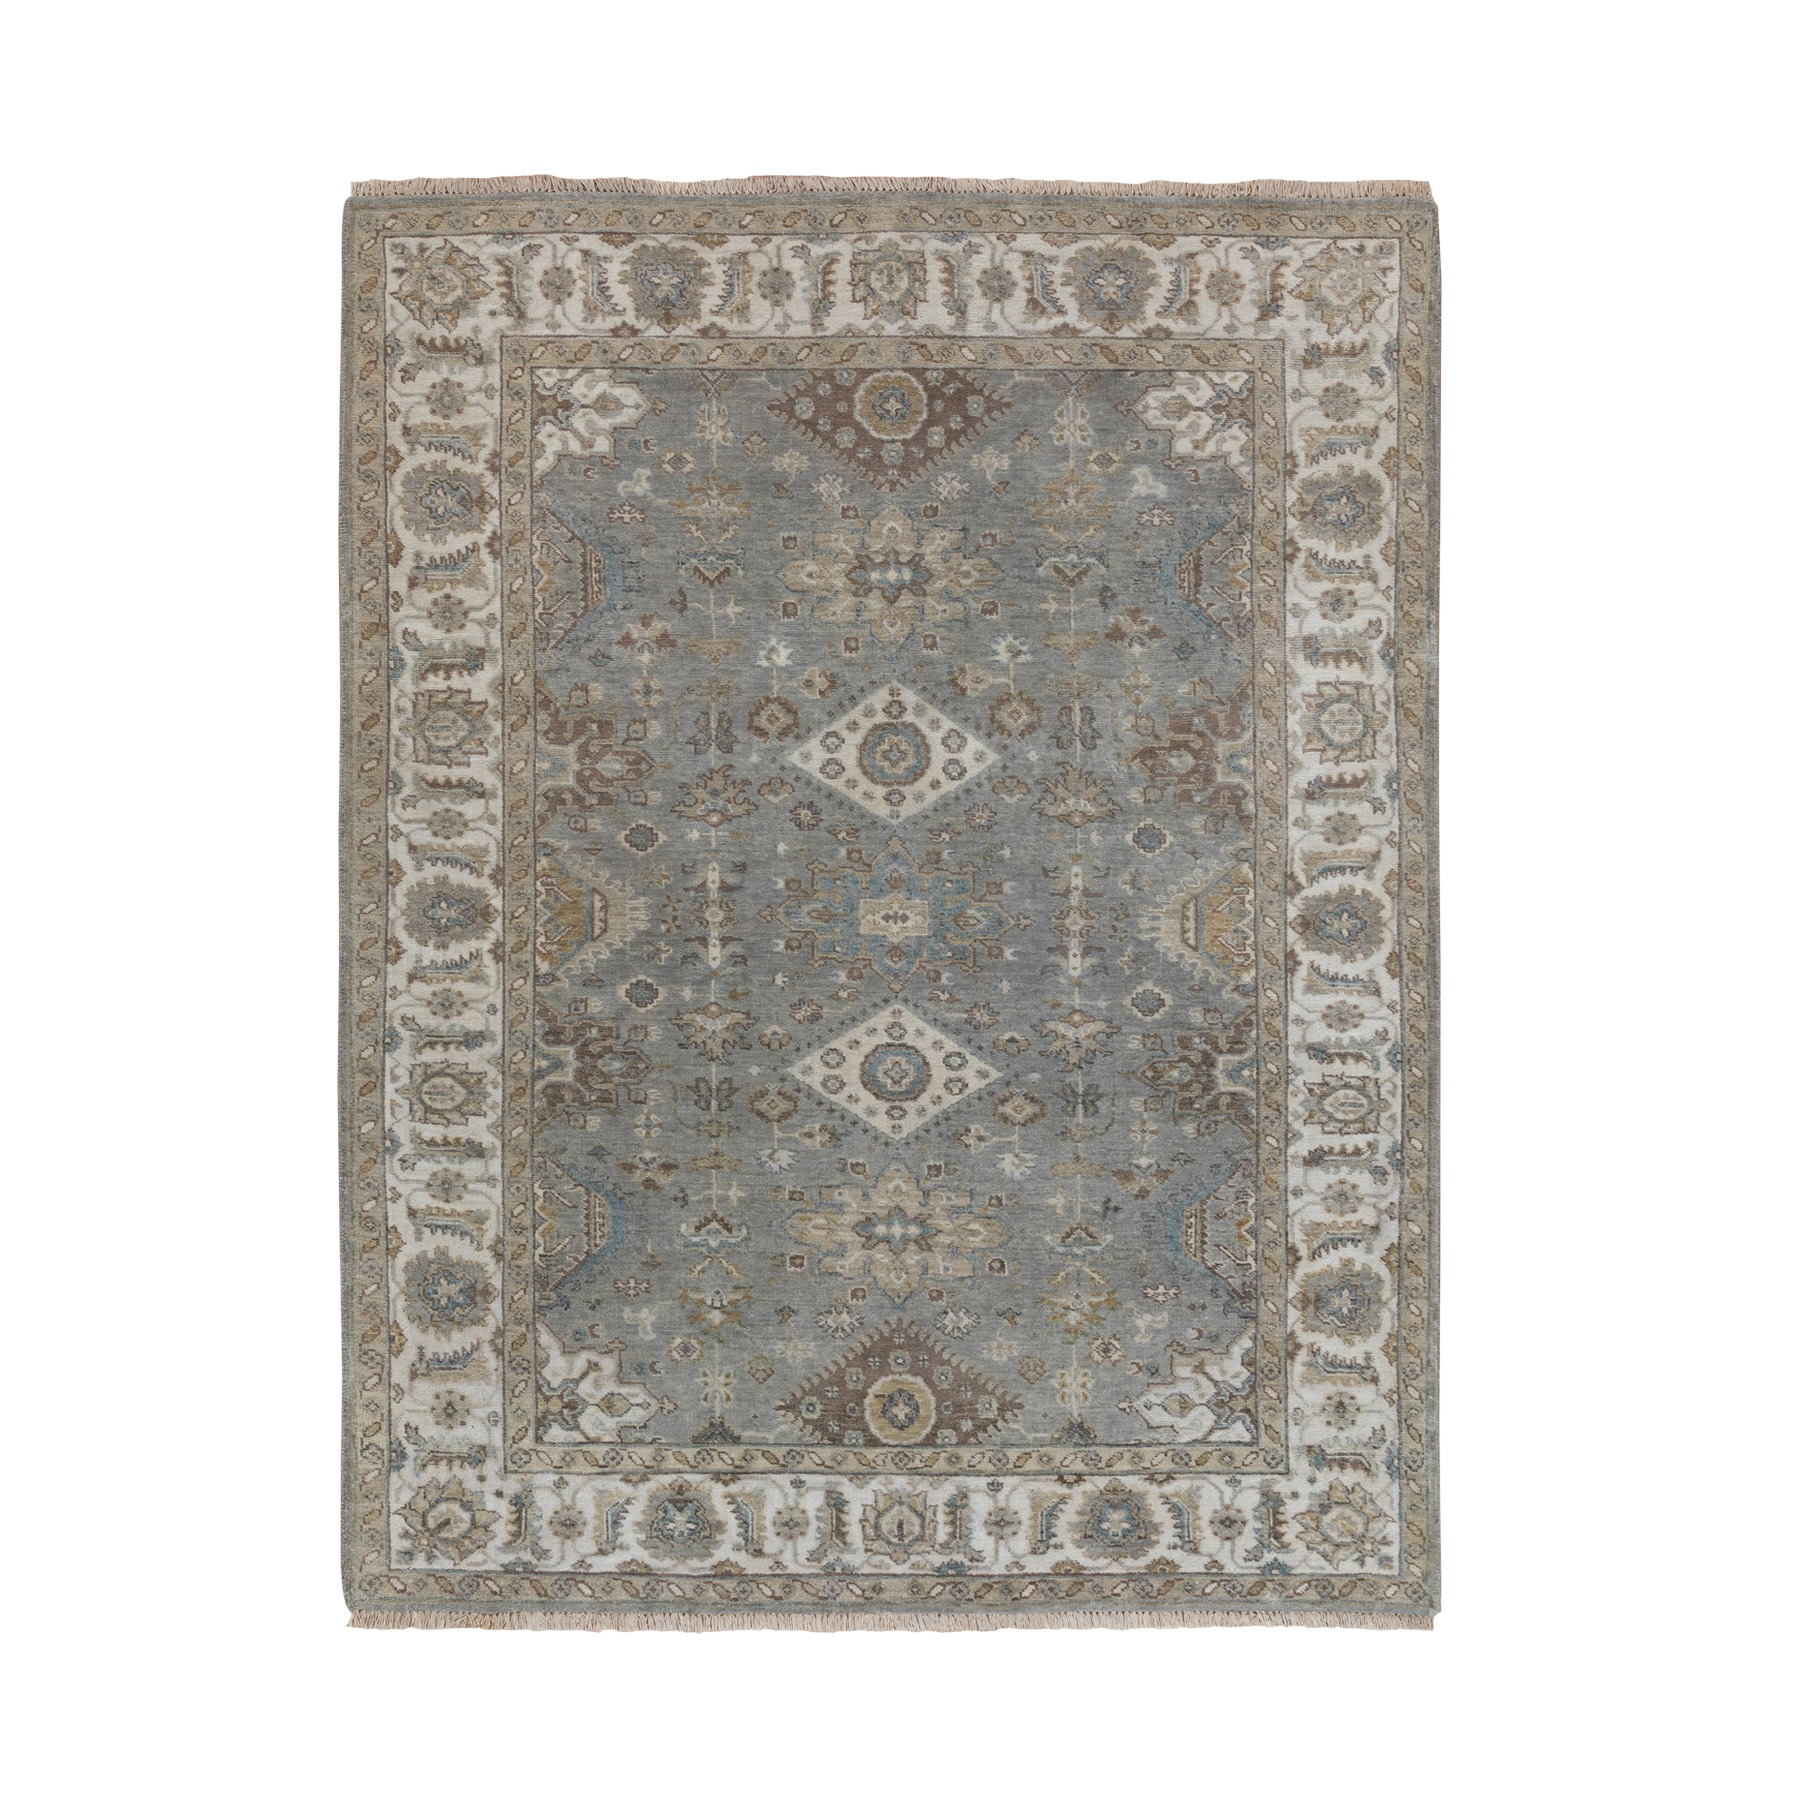 "5'2""x7' Hand Knotted Gray Karajeh Design Pure Wool Oriental Rug"